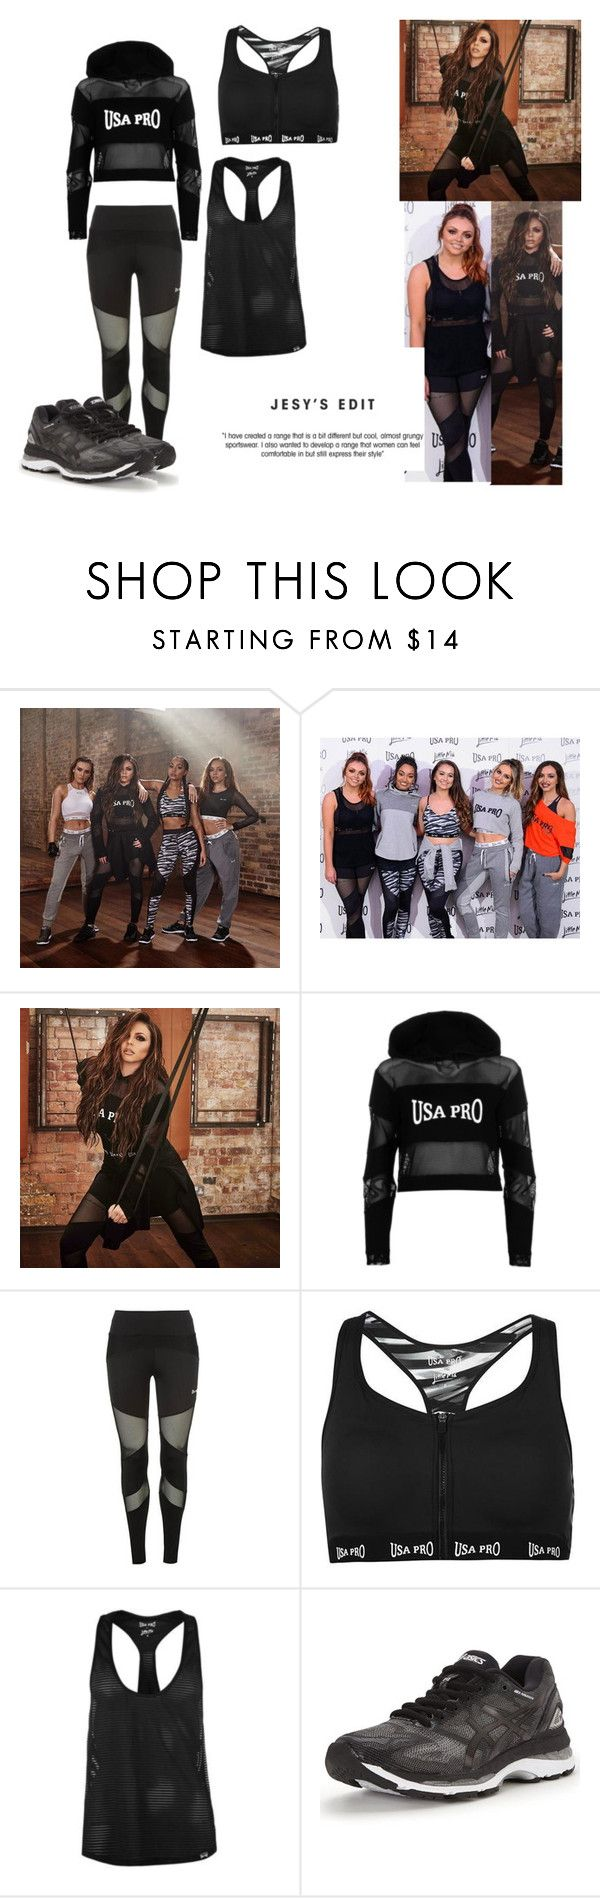 """Little Mix USA PRO(Jesy)"" by jamiehemmings19 ❤ liked on Polyvore featuring USA Pro and Asics"